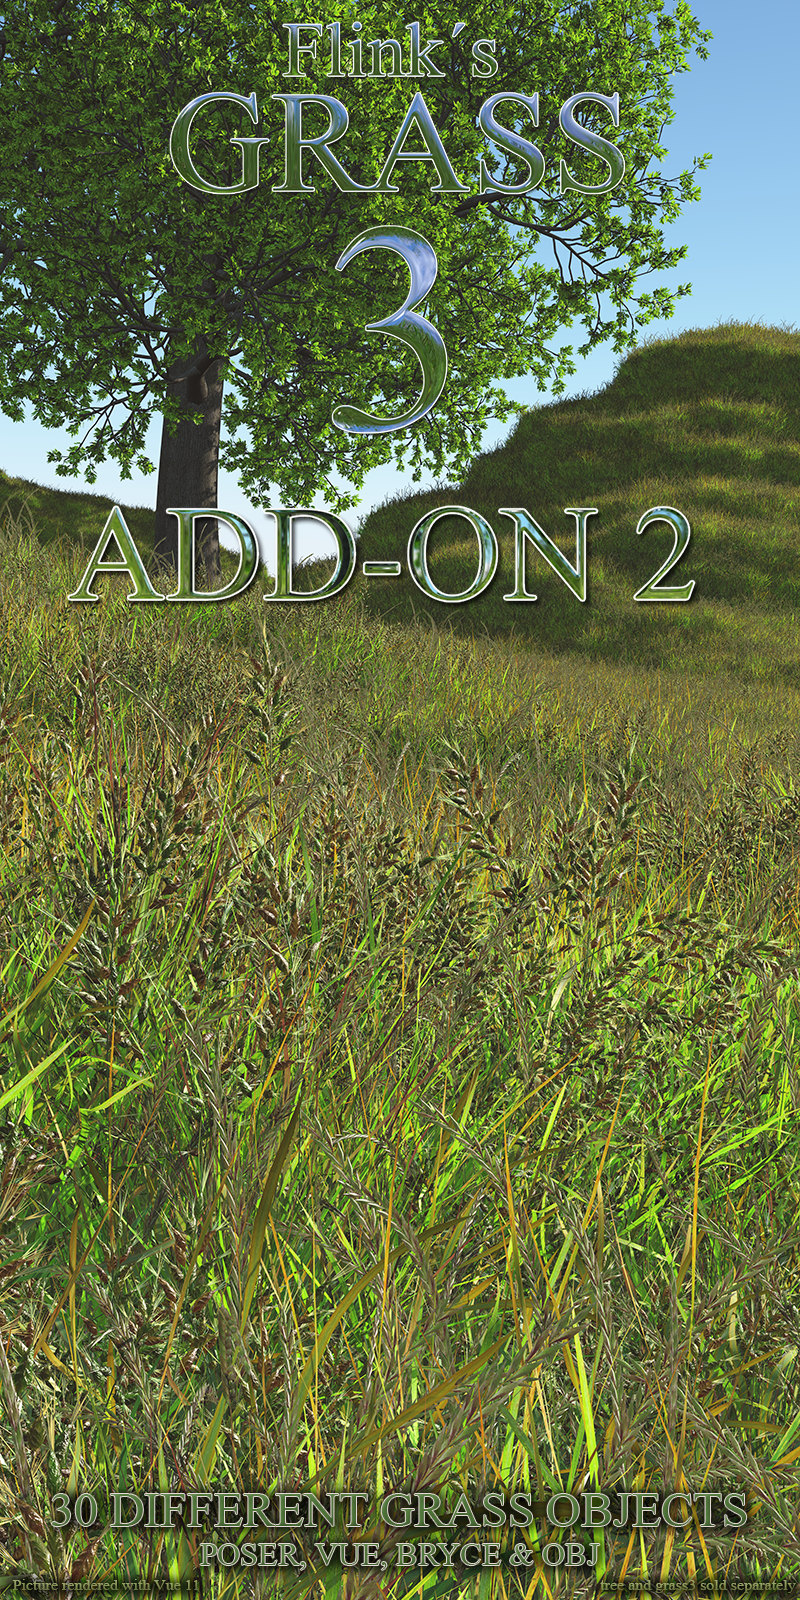 Flinks Grass 3 - Add-on 2